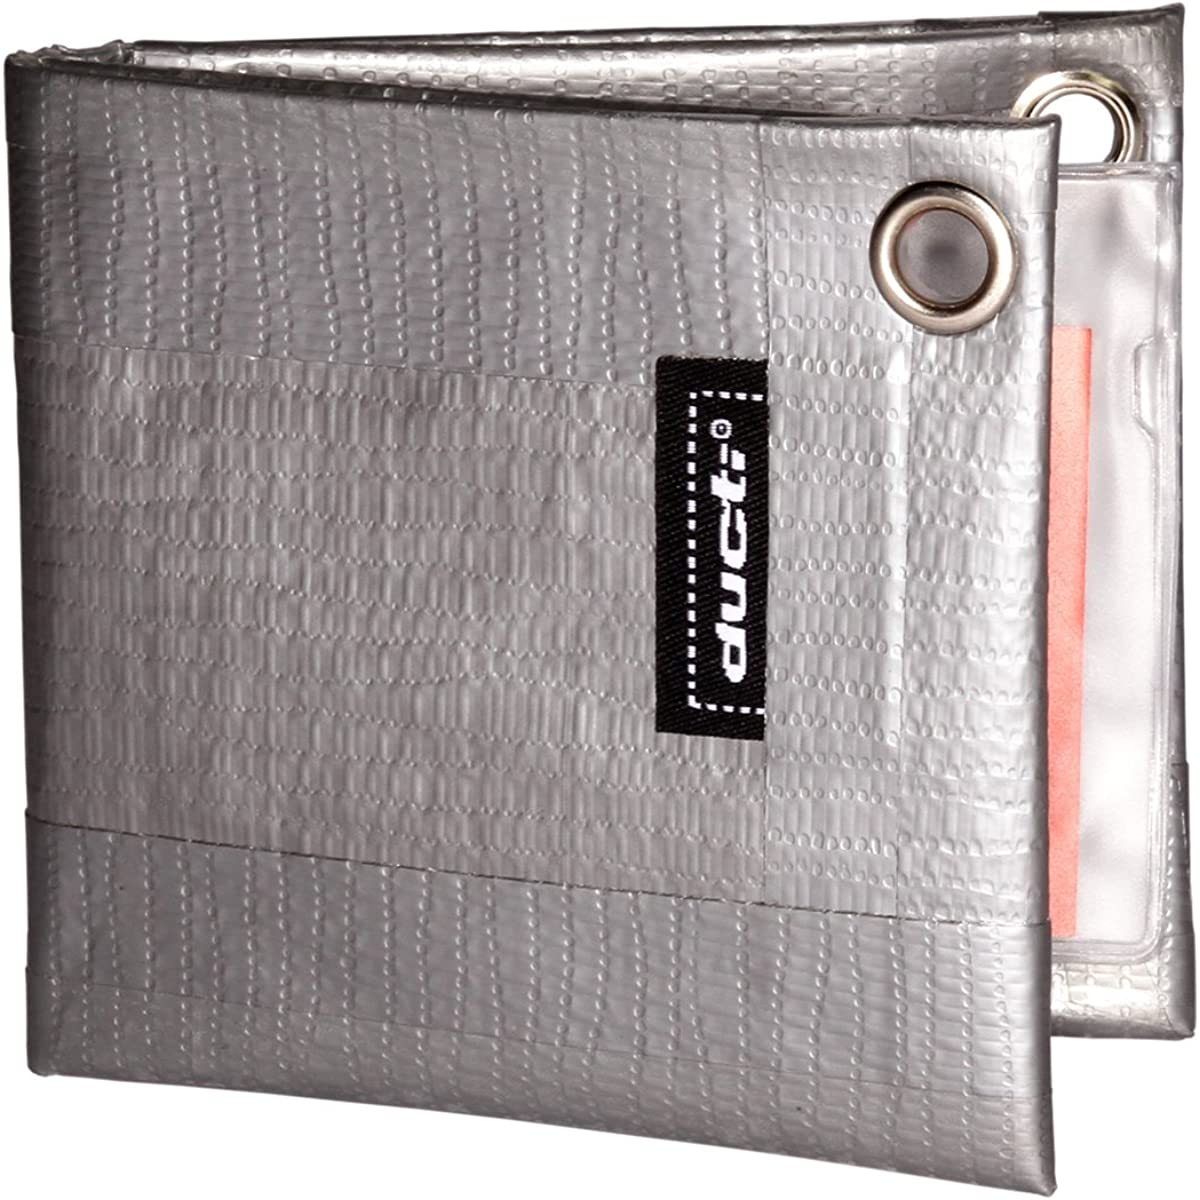 Ducti Super Duct Tape Trifold/Bifold Wallets (Classic BiFold)